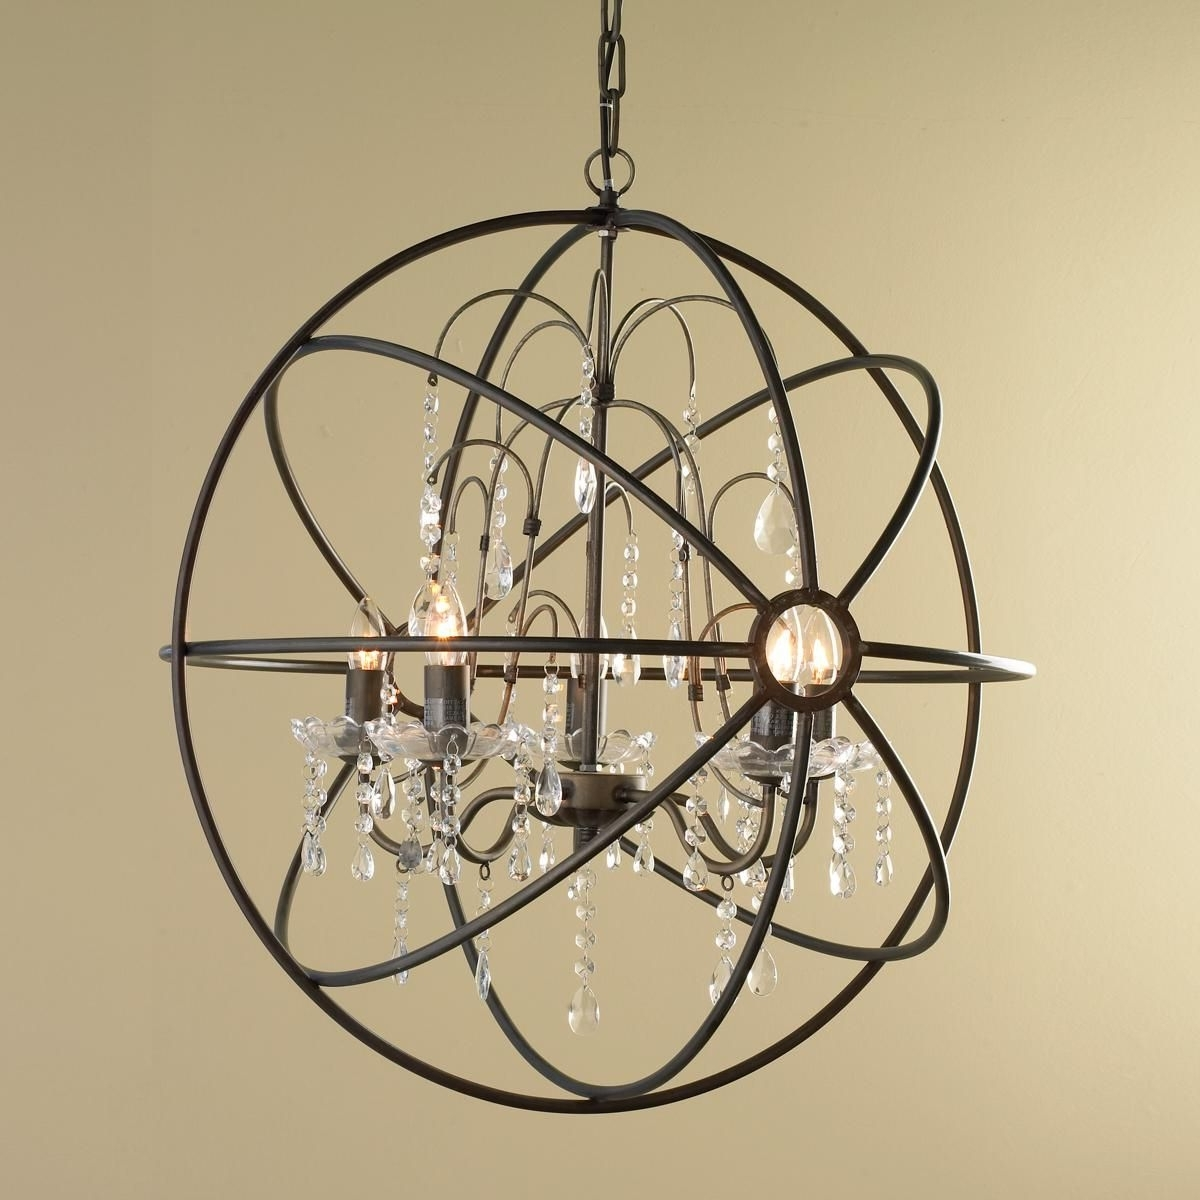 Crystal And Metal Orb Chandelier (View 7 of 20)